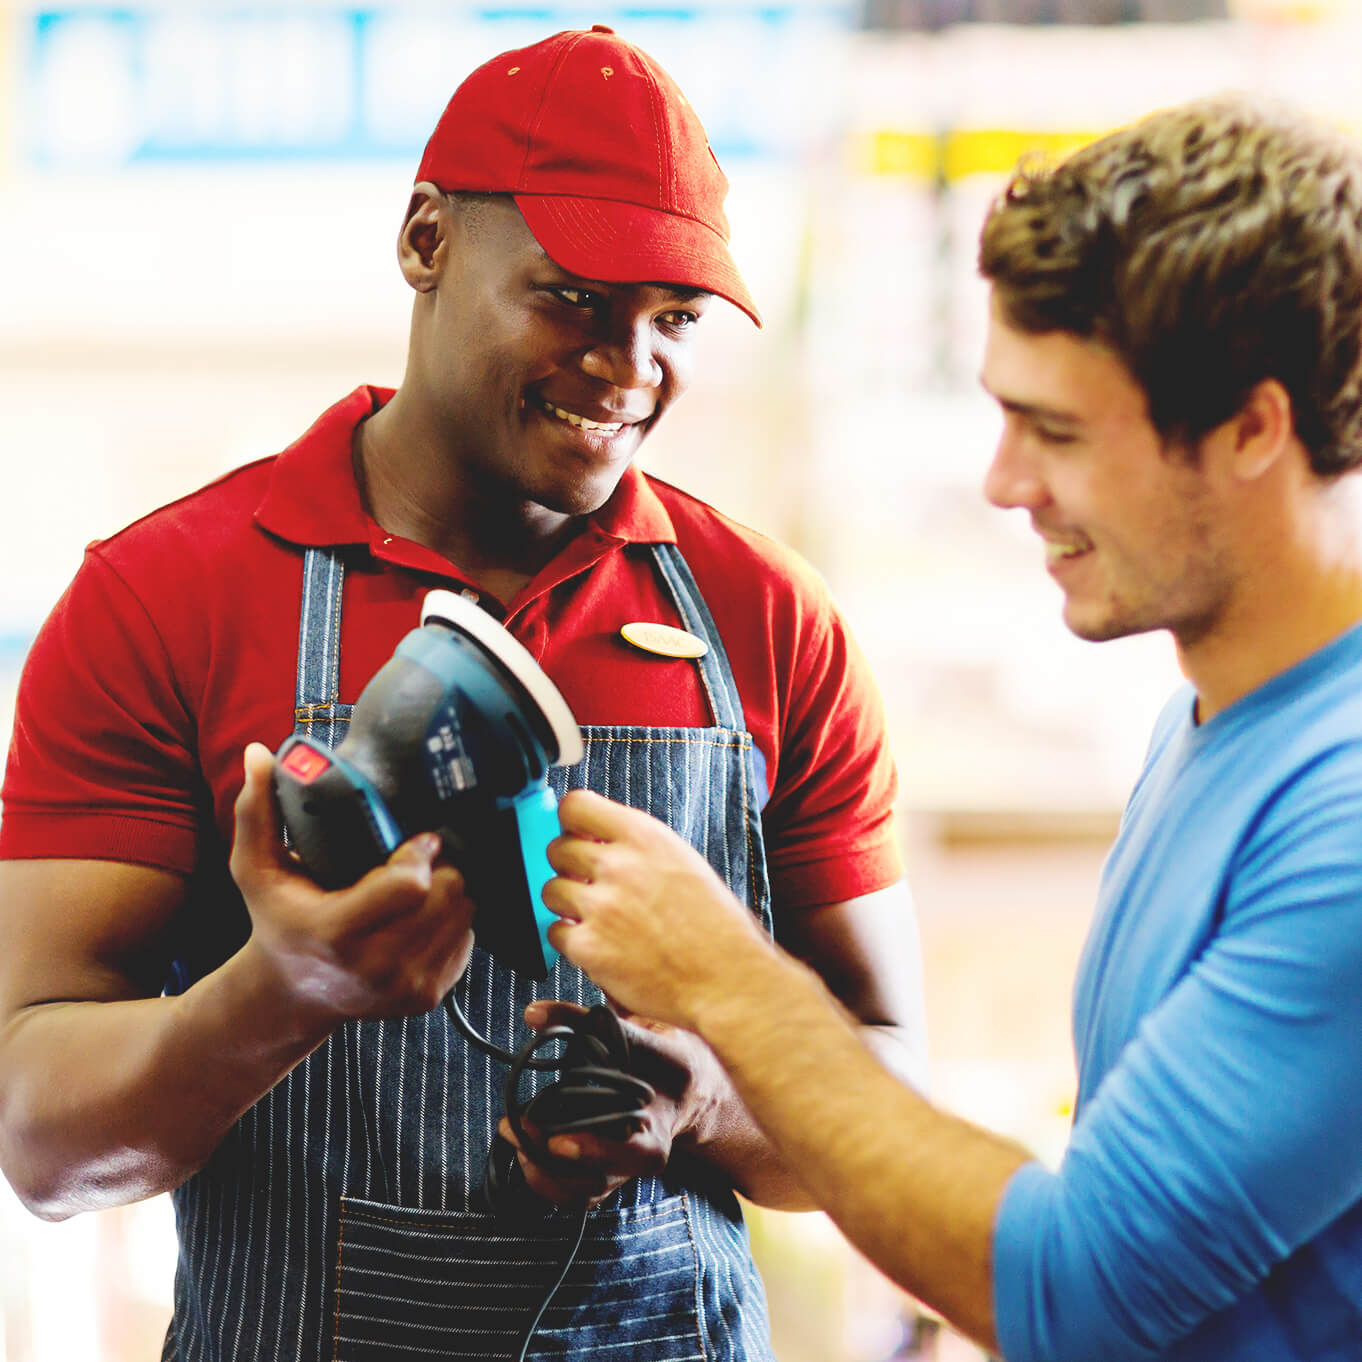 Smiling retail worker in a red hat, red shirt and blue & white striped apron. He helps a customer in a blue shirt chose a power tool.